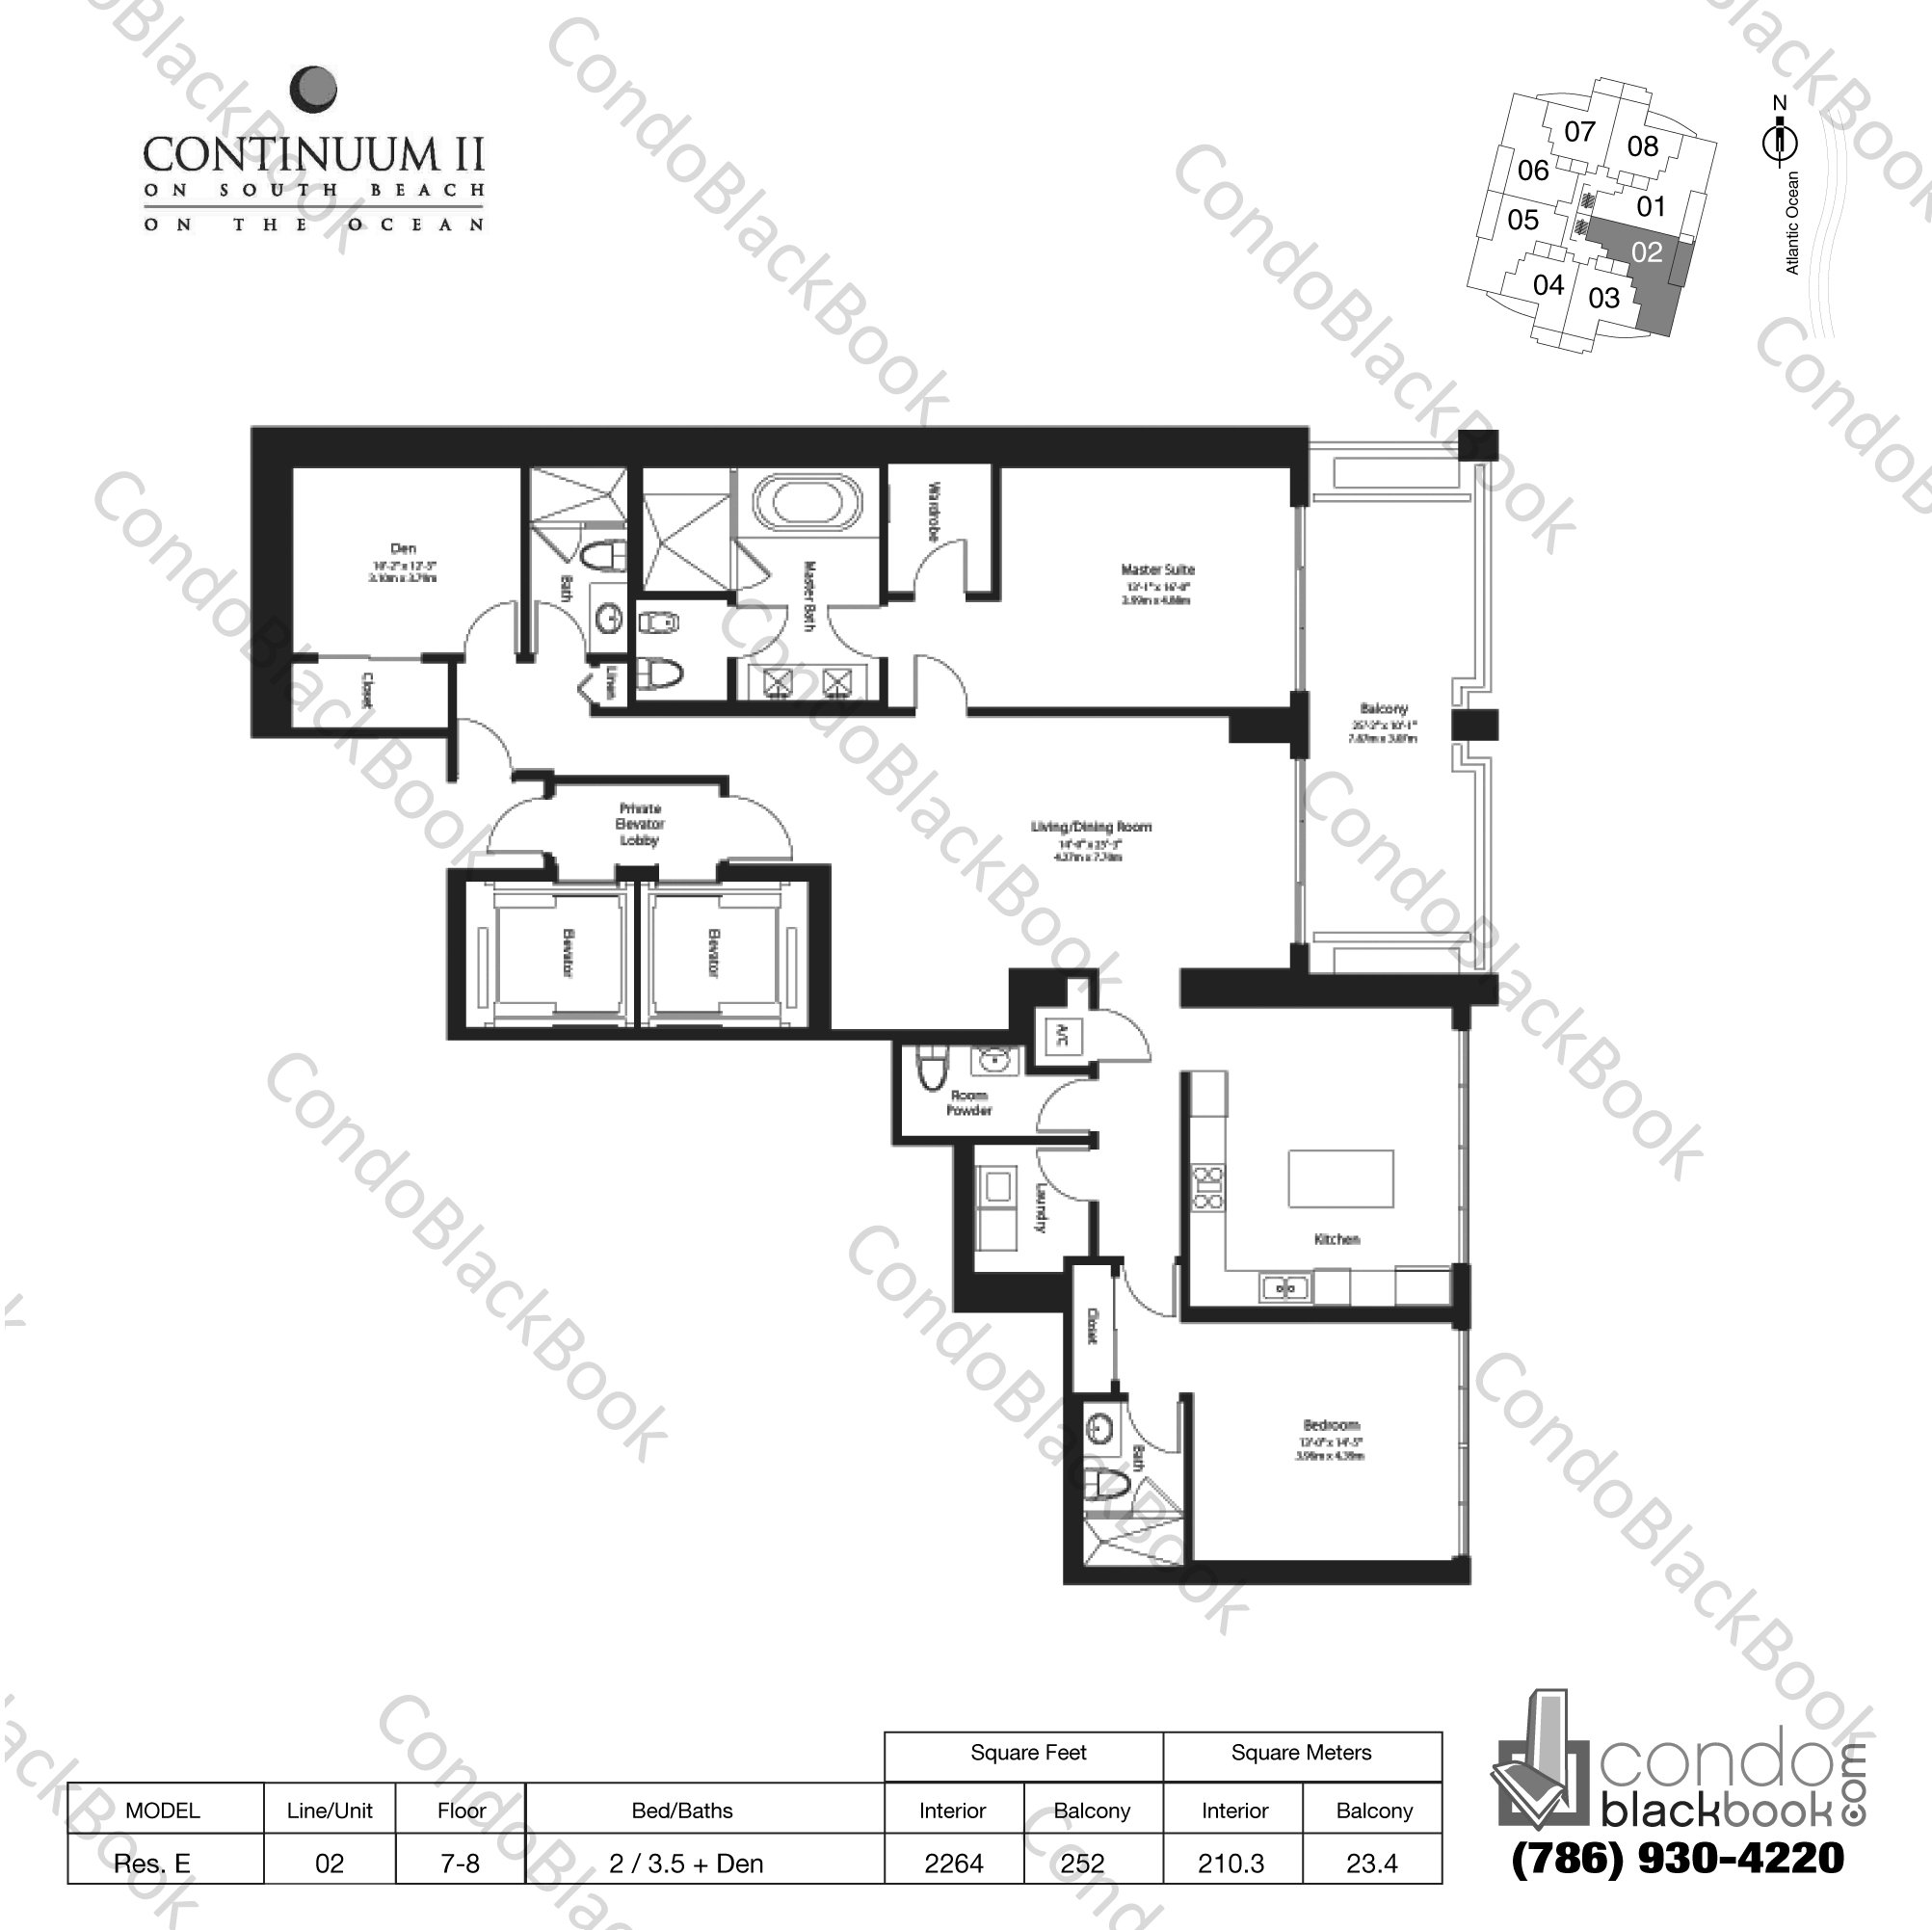 Floor plan for Continuum II North South Beach Miami Beach, model Res. E, line 02, 2 / 3.5 + Den bedrooms, 2264 sq ft